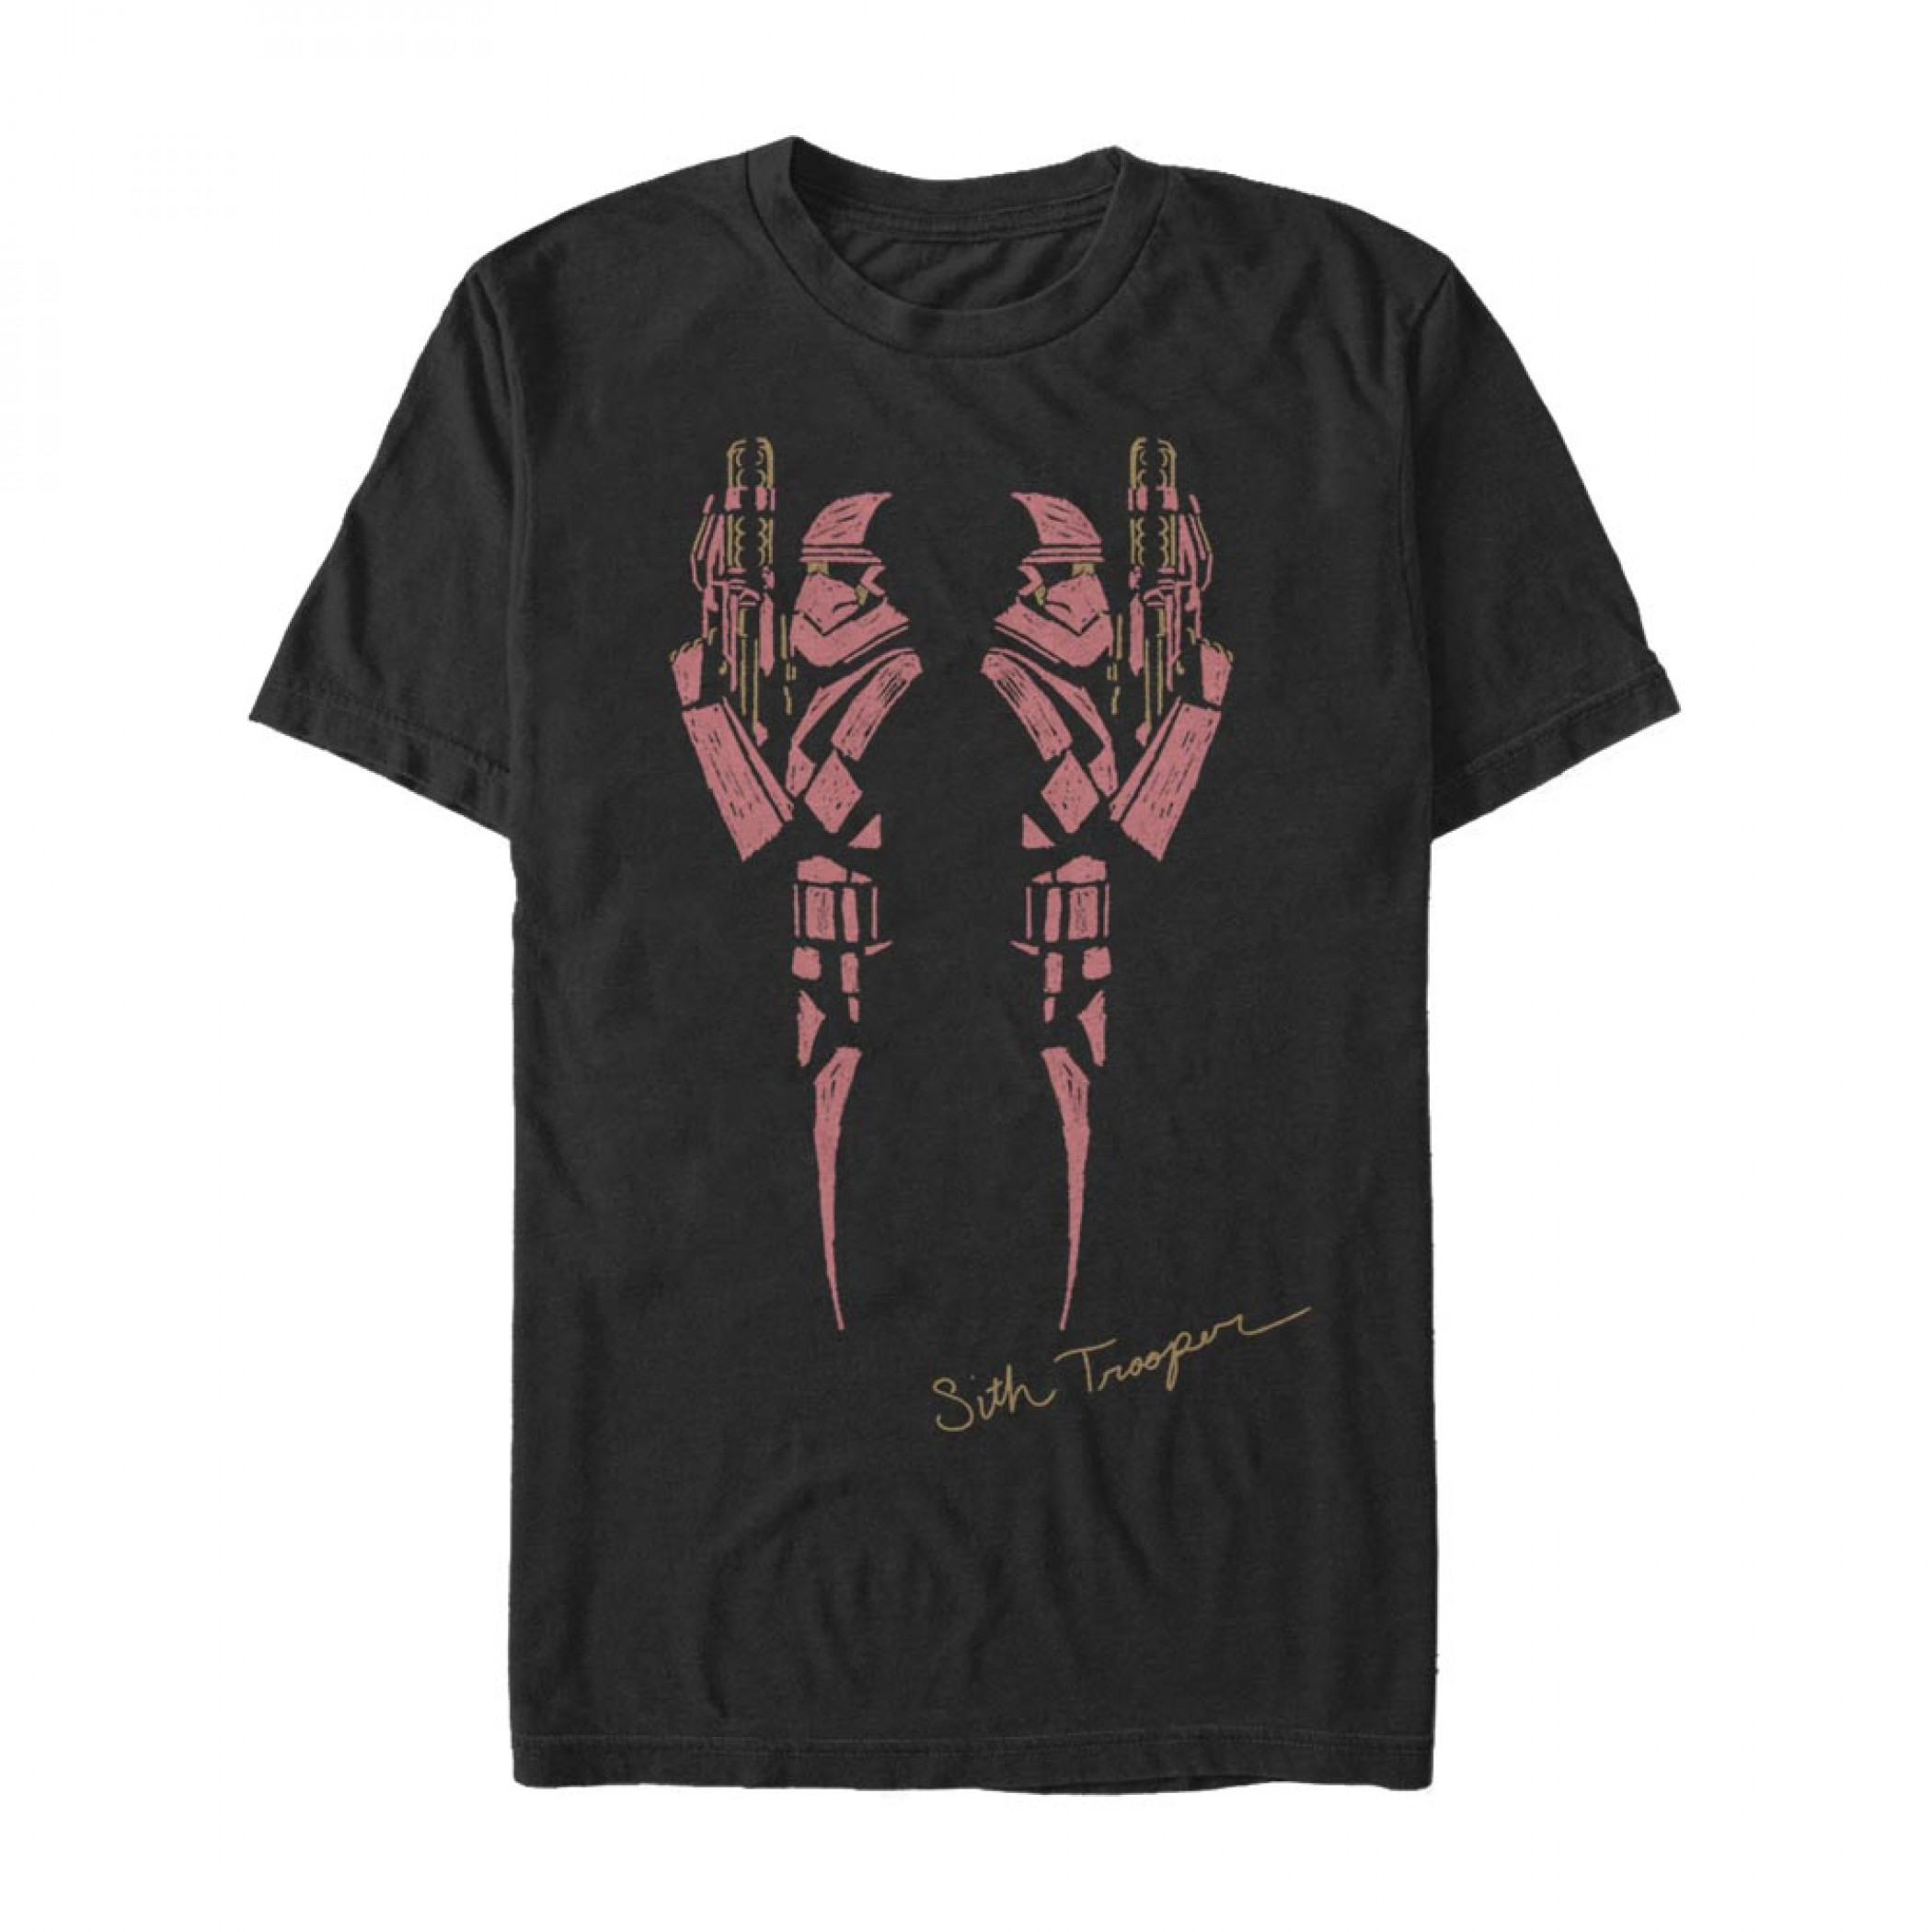 Star Wars The Rise of Skywalker Sith Troopers T-Shirt